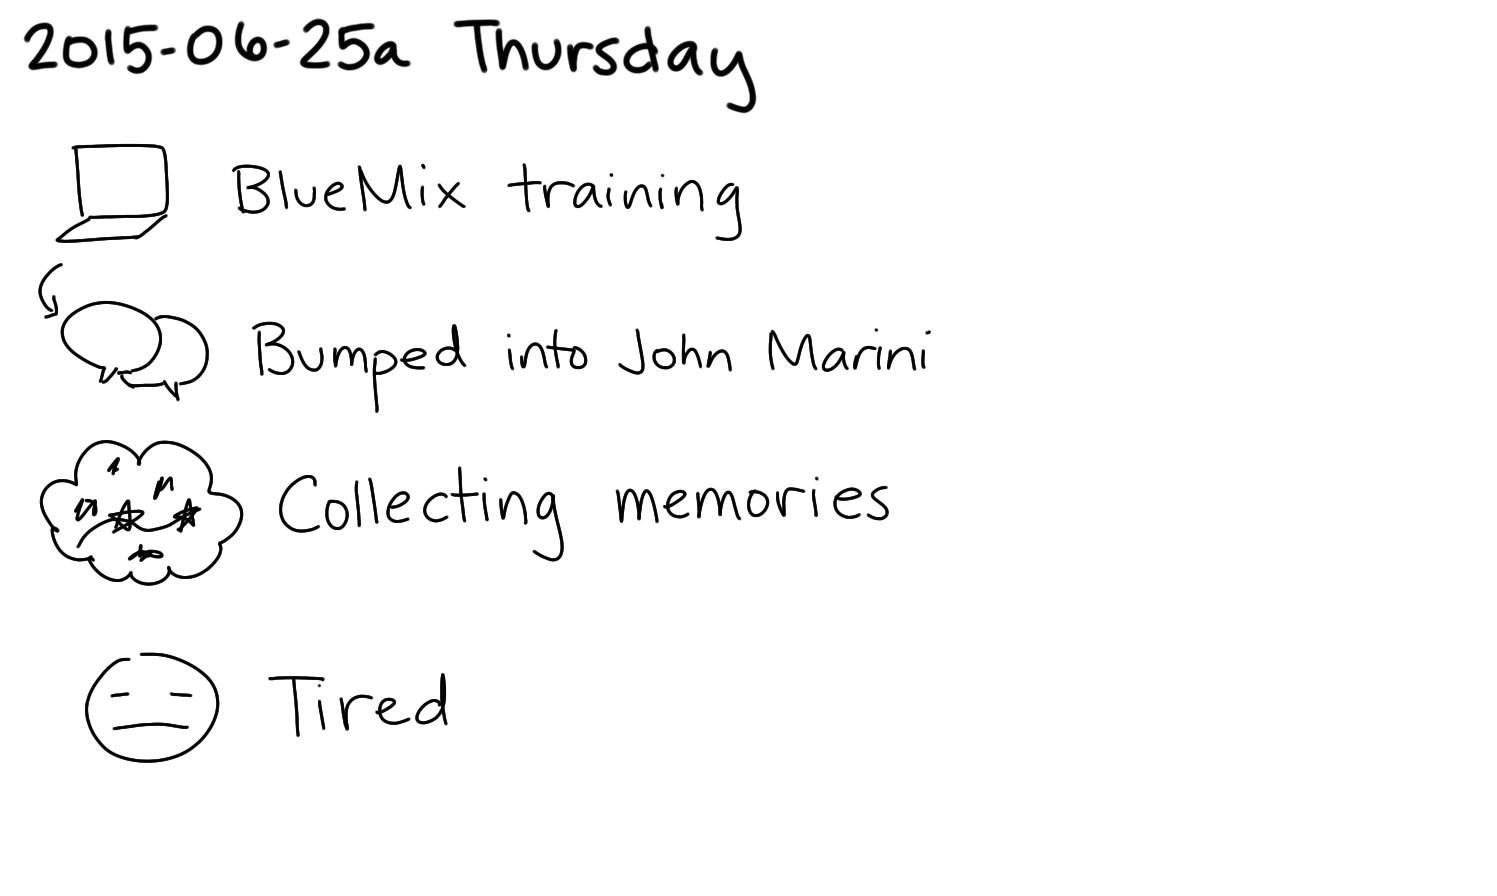 2015-06-25a Thursday -- index card #journal.png